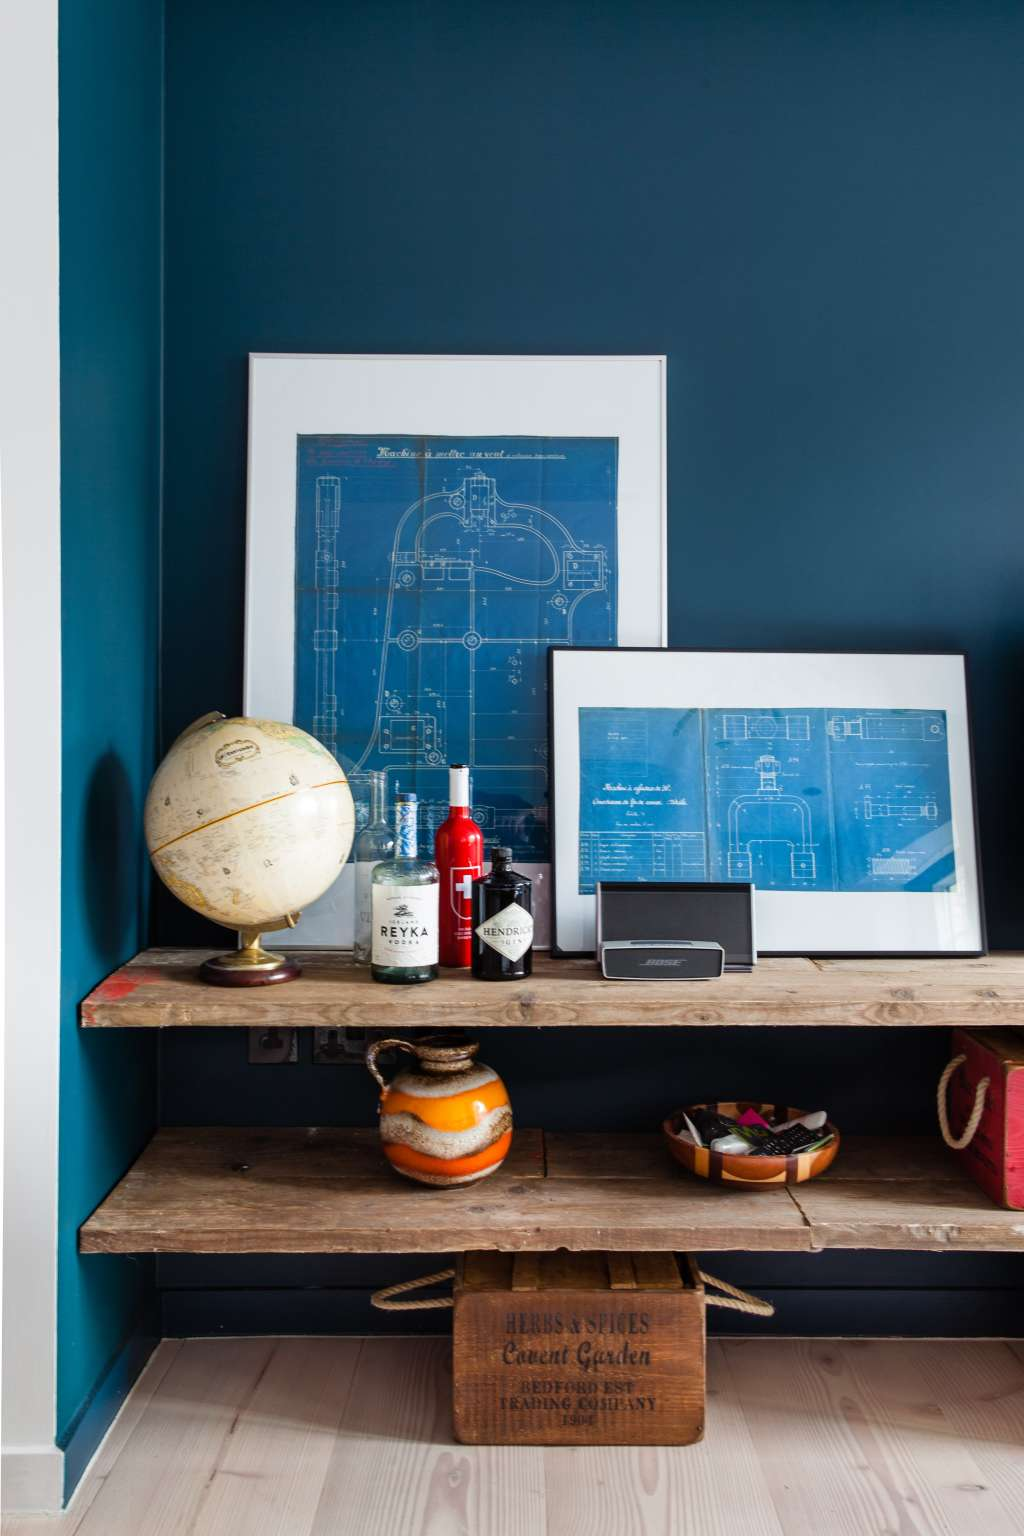 4 Rules to Stick To When Your Storage Containers Show